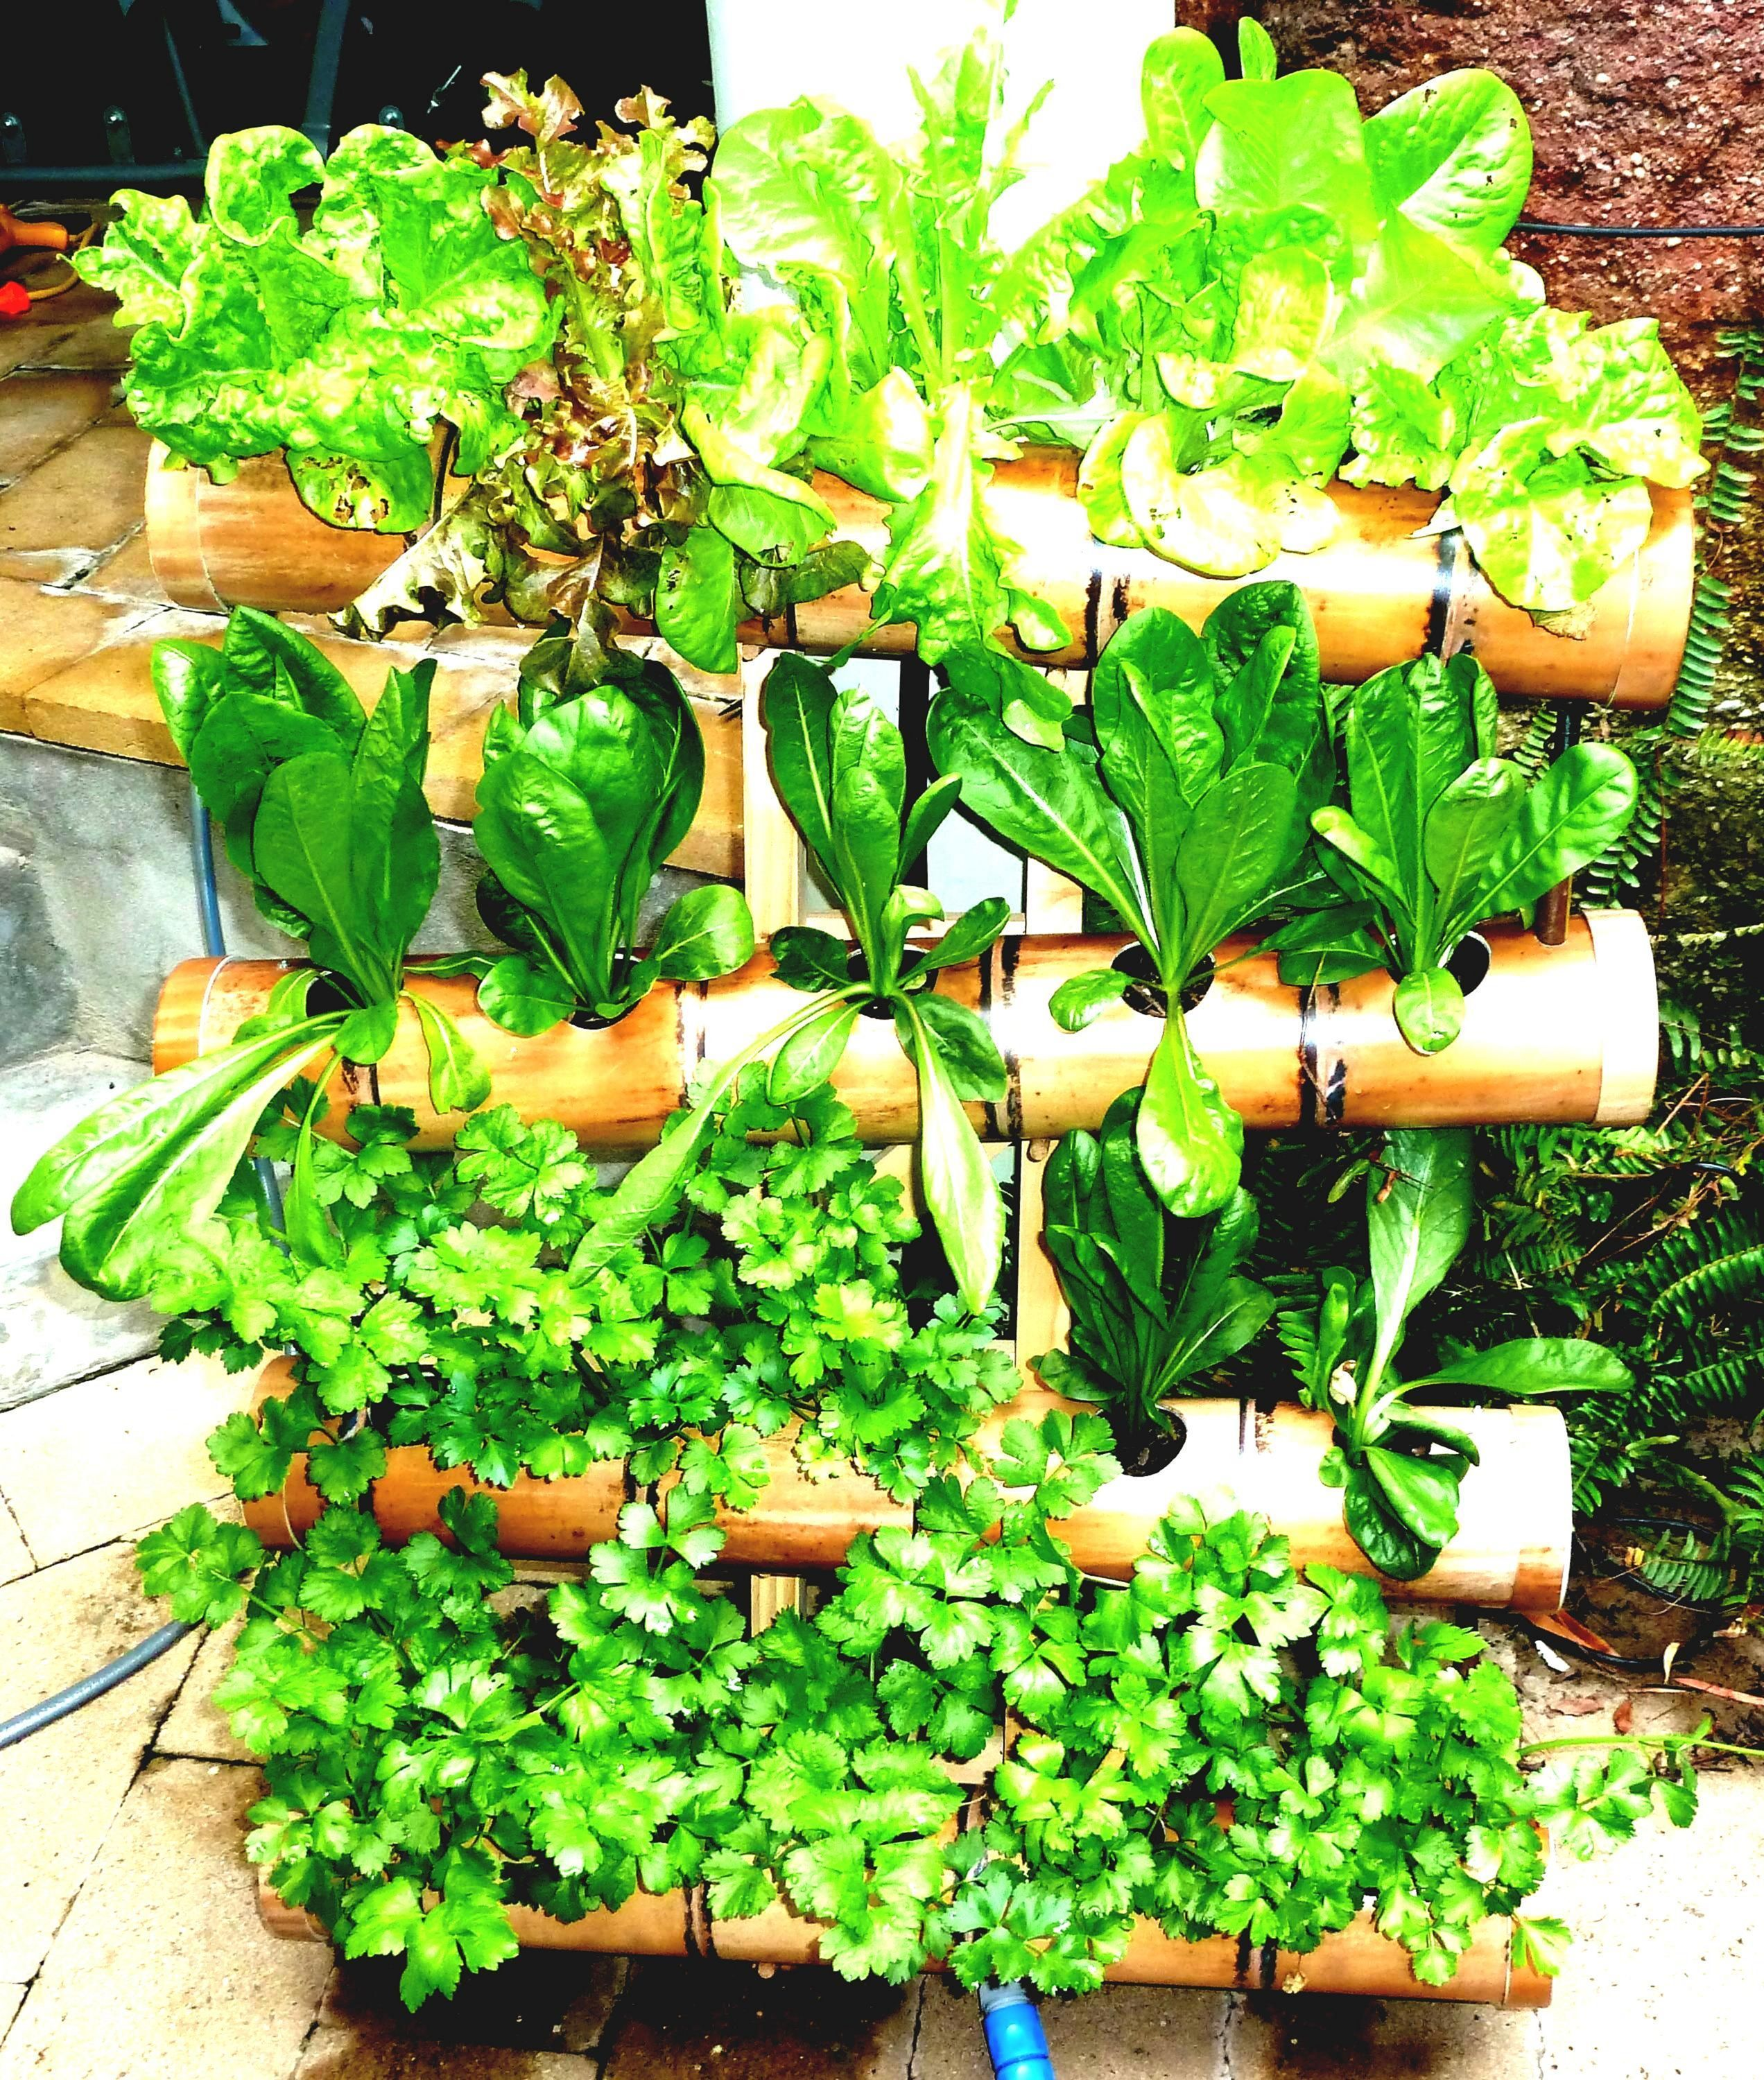 15 Fabulous Vertical Vegetable Garden Ideas For Small Space  15 Fabulous Vertical Vegetable Garden Ideas For Small Space